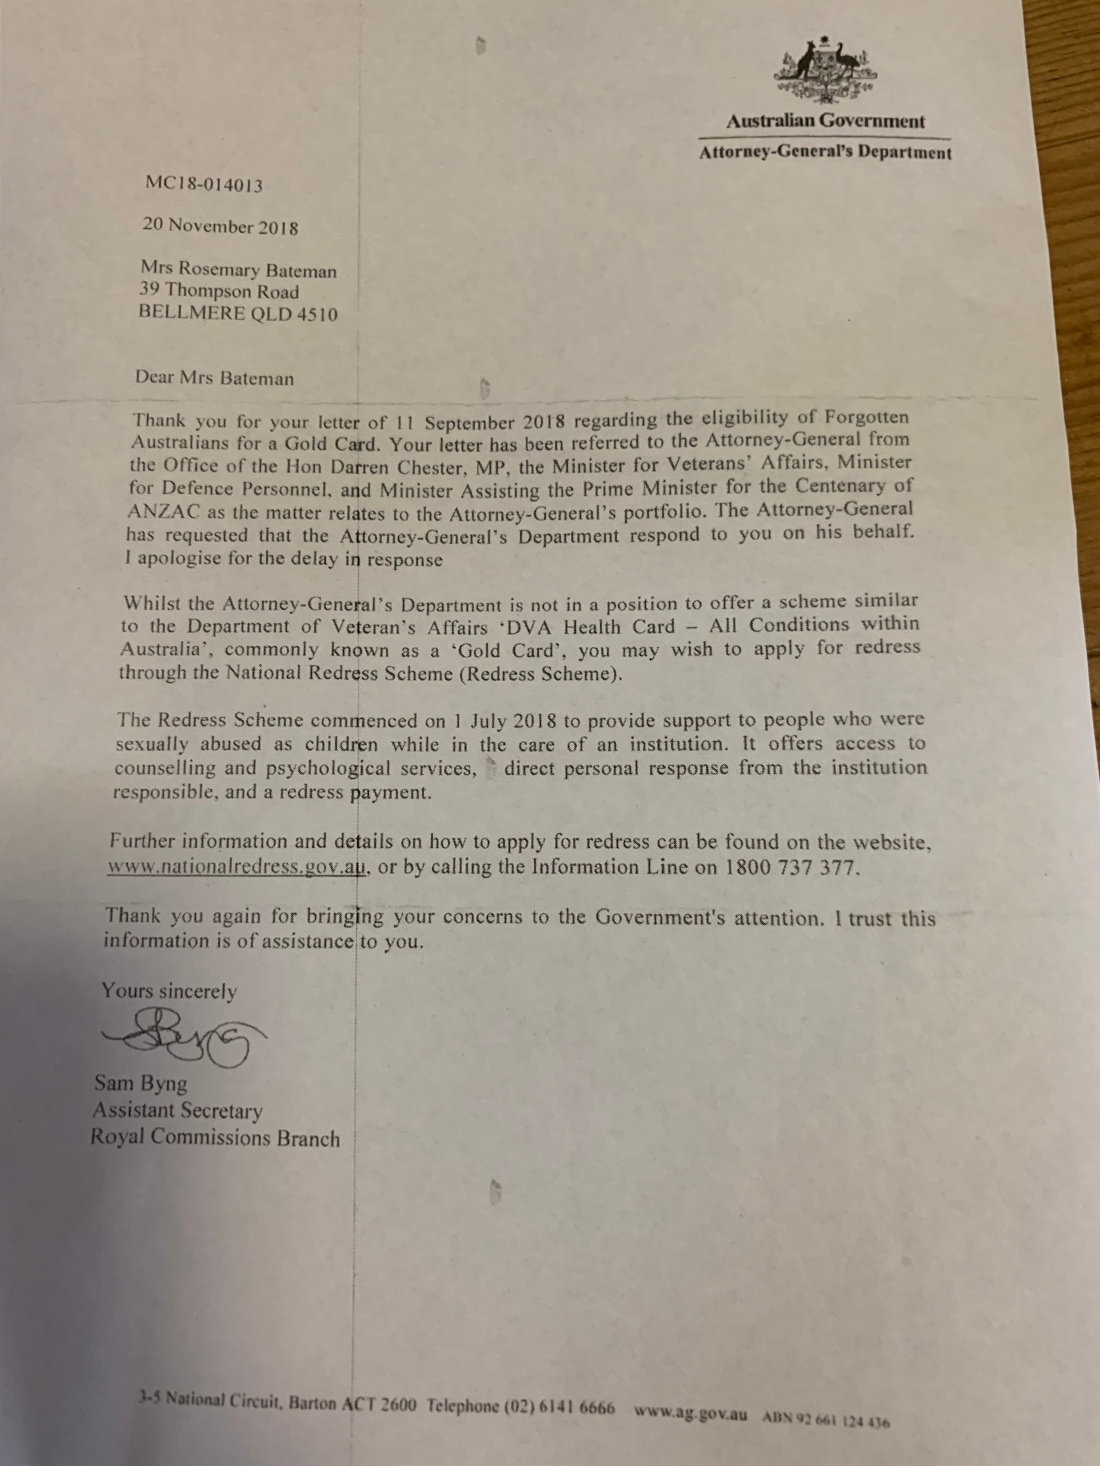 Attorney General reply to Rosemary